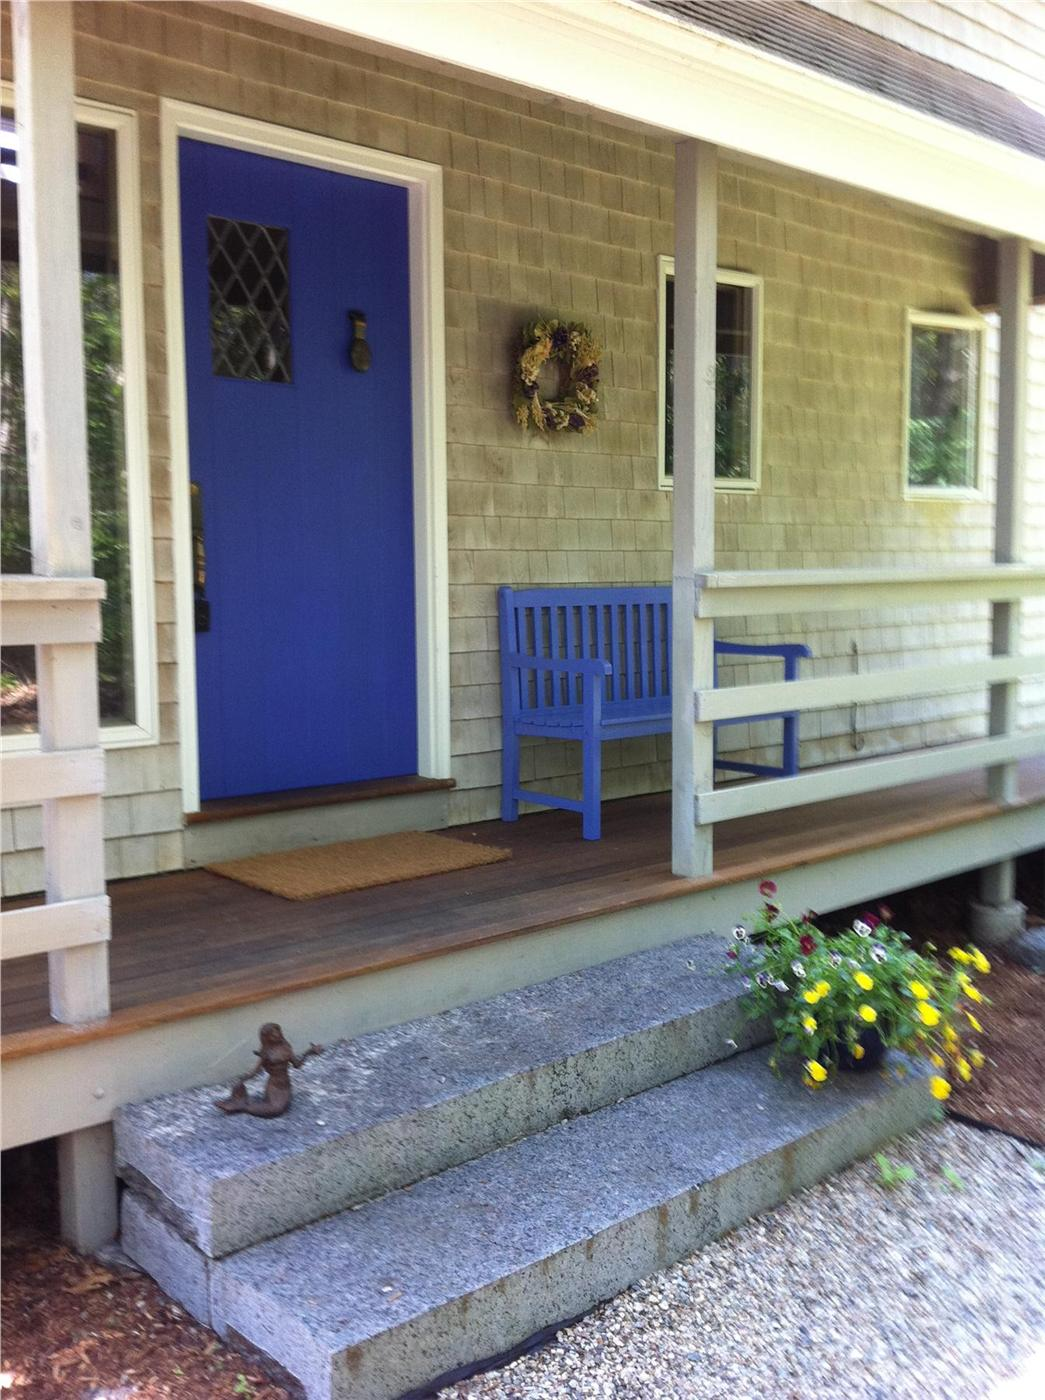 Falmouth Vacation Rental home in Cape Cod MA 02540 03